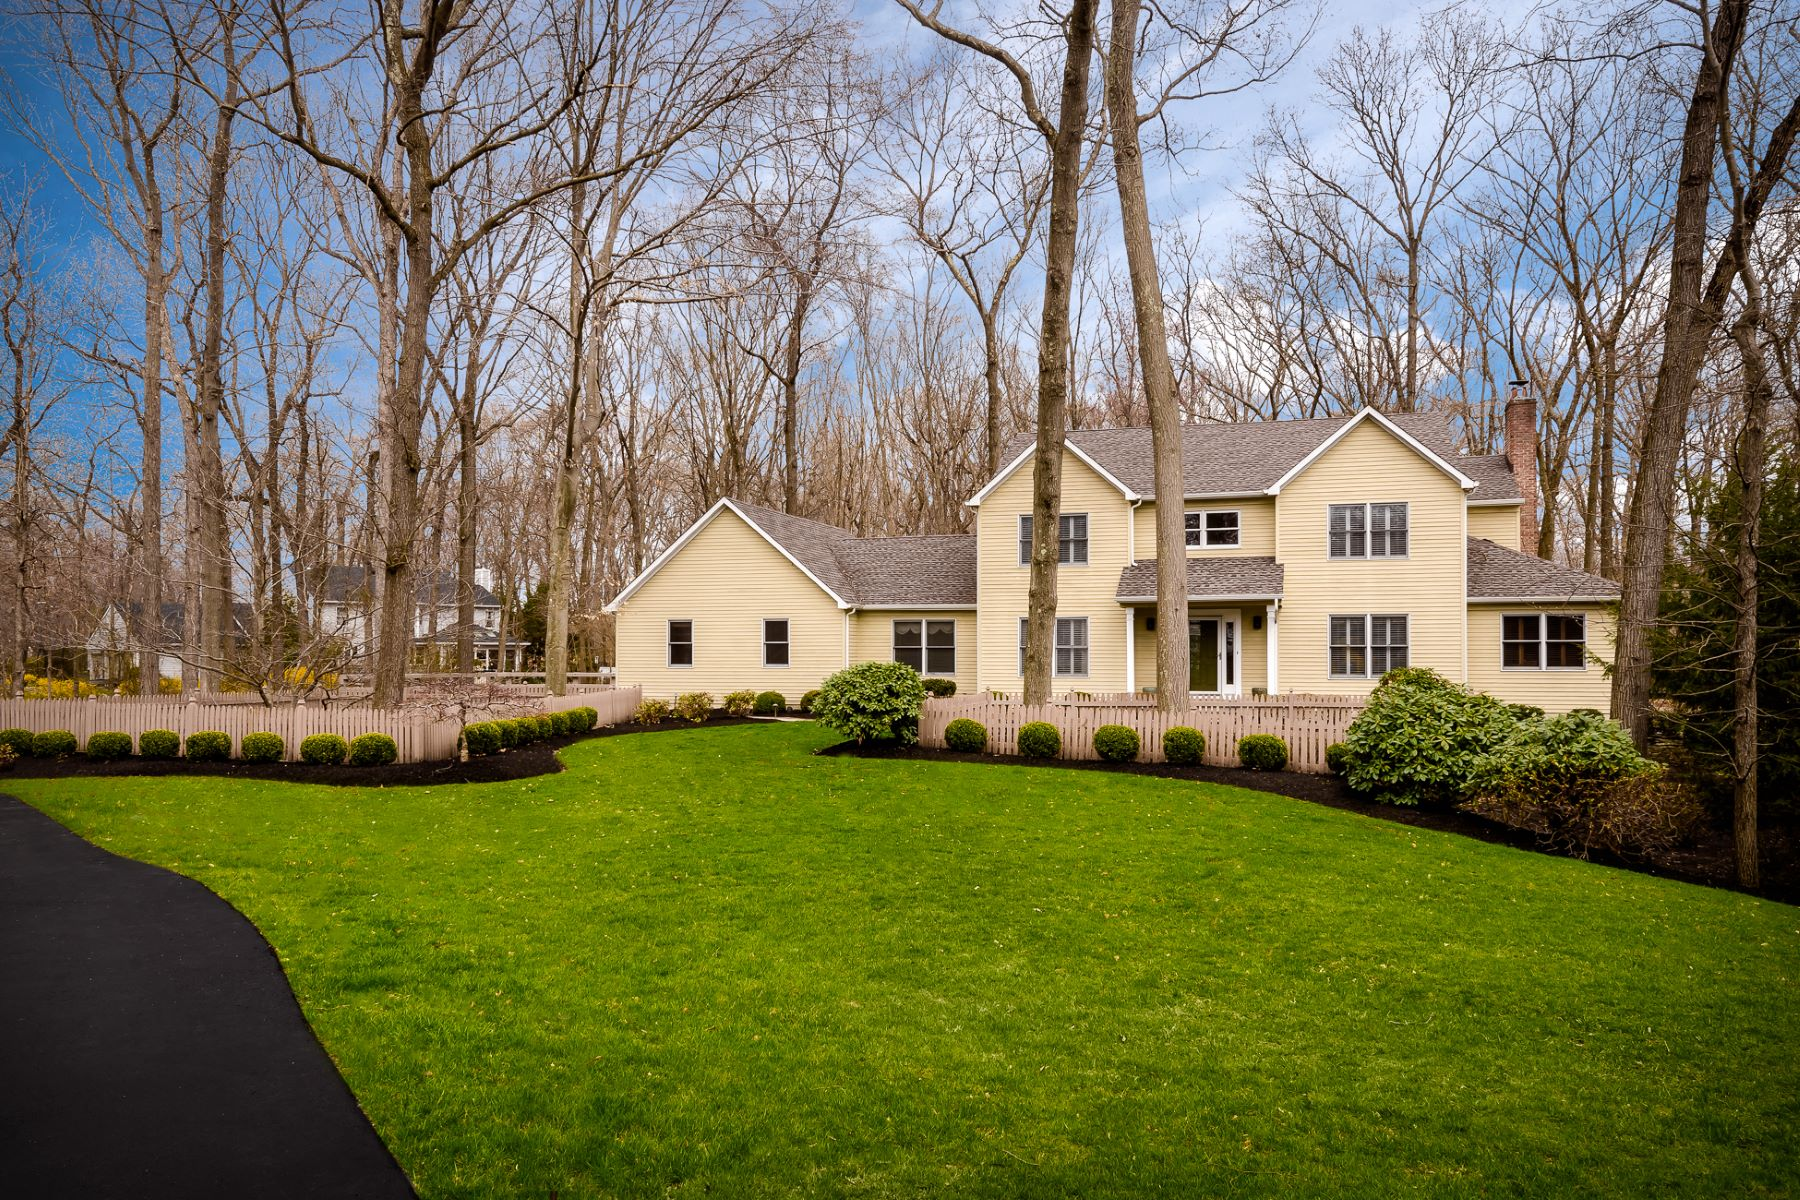 single family homes para Venda às A Premium Position on a Manicured Cul-De-Sac 16 Blackhawk Court, West Windsor, Nova Jersey 08550 Estados Unidos